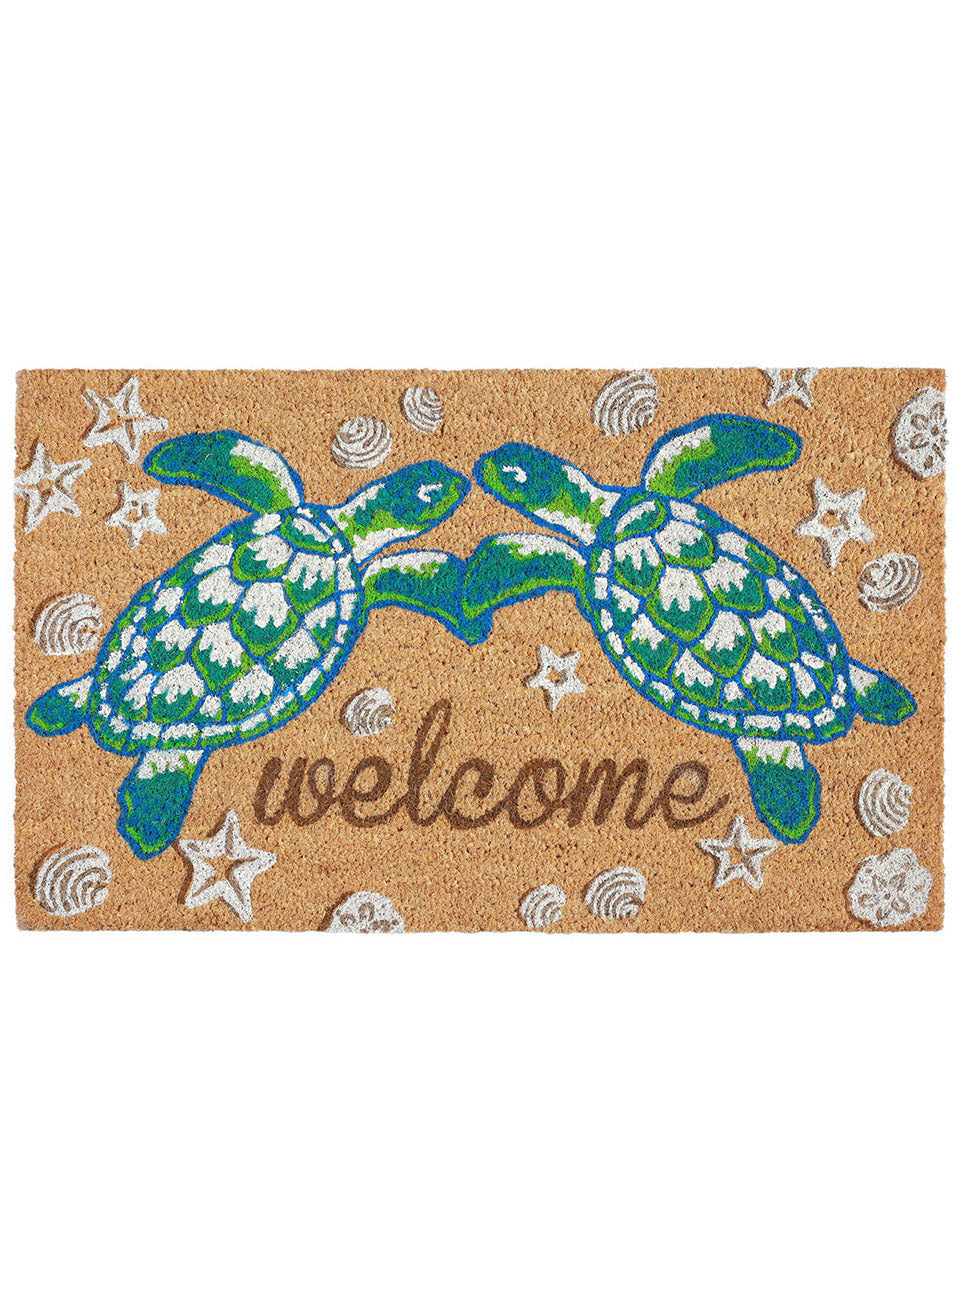 Sea Turtle Friends Welcome Natural Door Mat 30x18Home Womens Apparel Mermaid Life